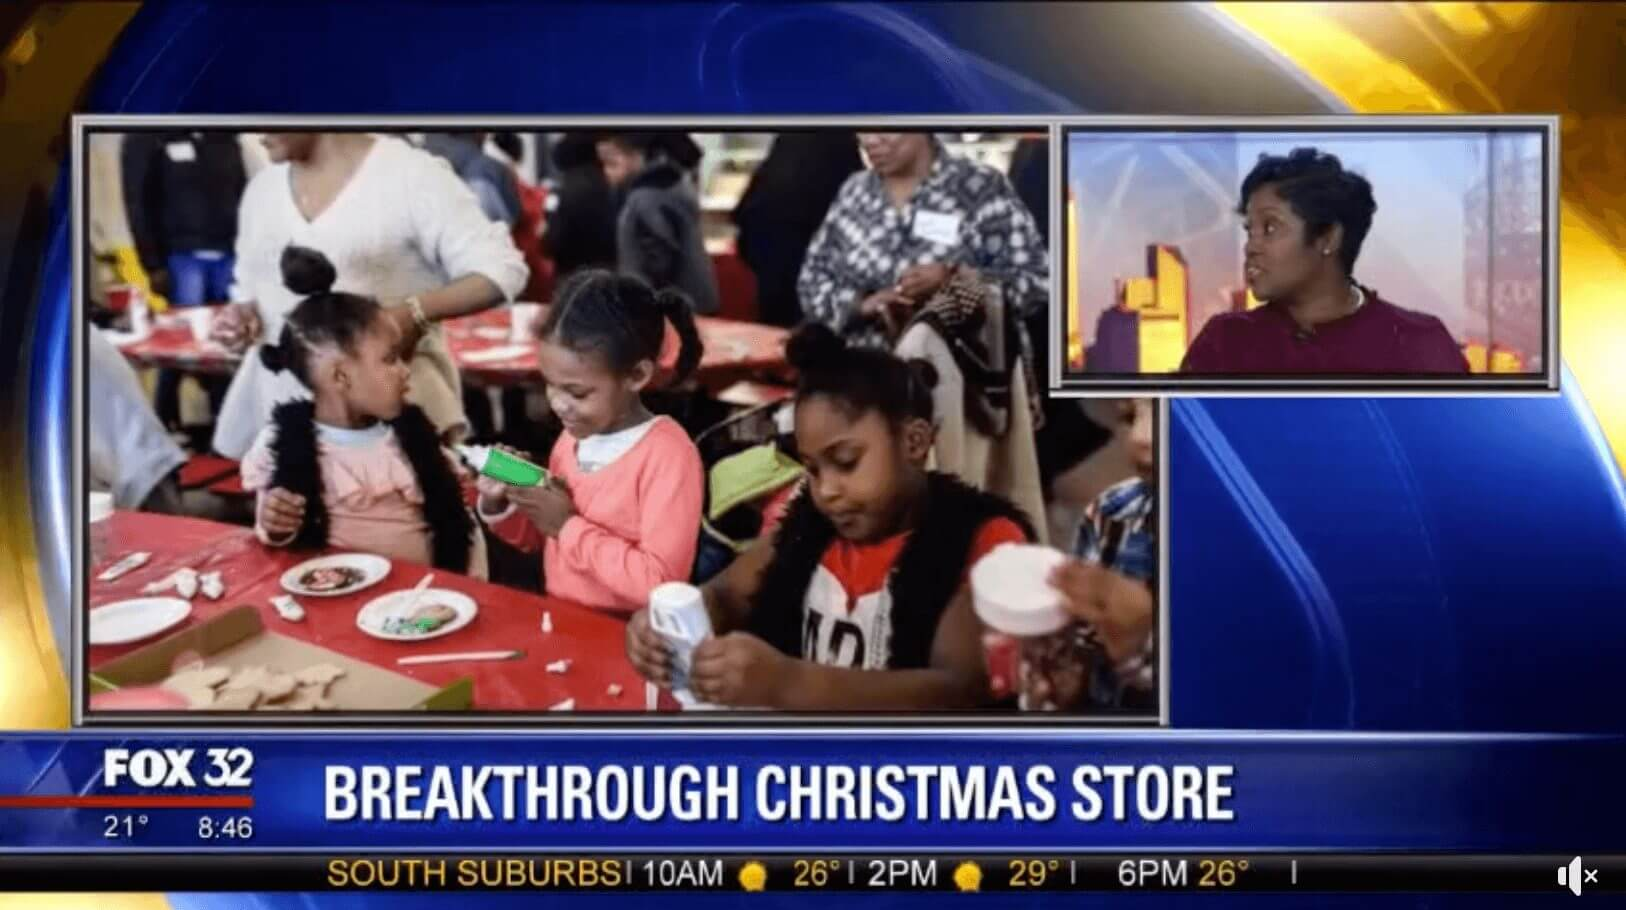 children making crafts and Wilonda Cannon on Fox 32 feature of Breakthrough Christmas Store